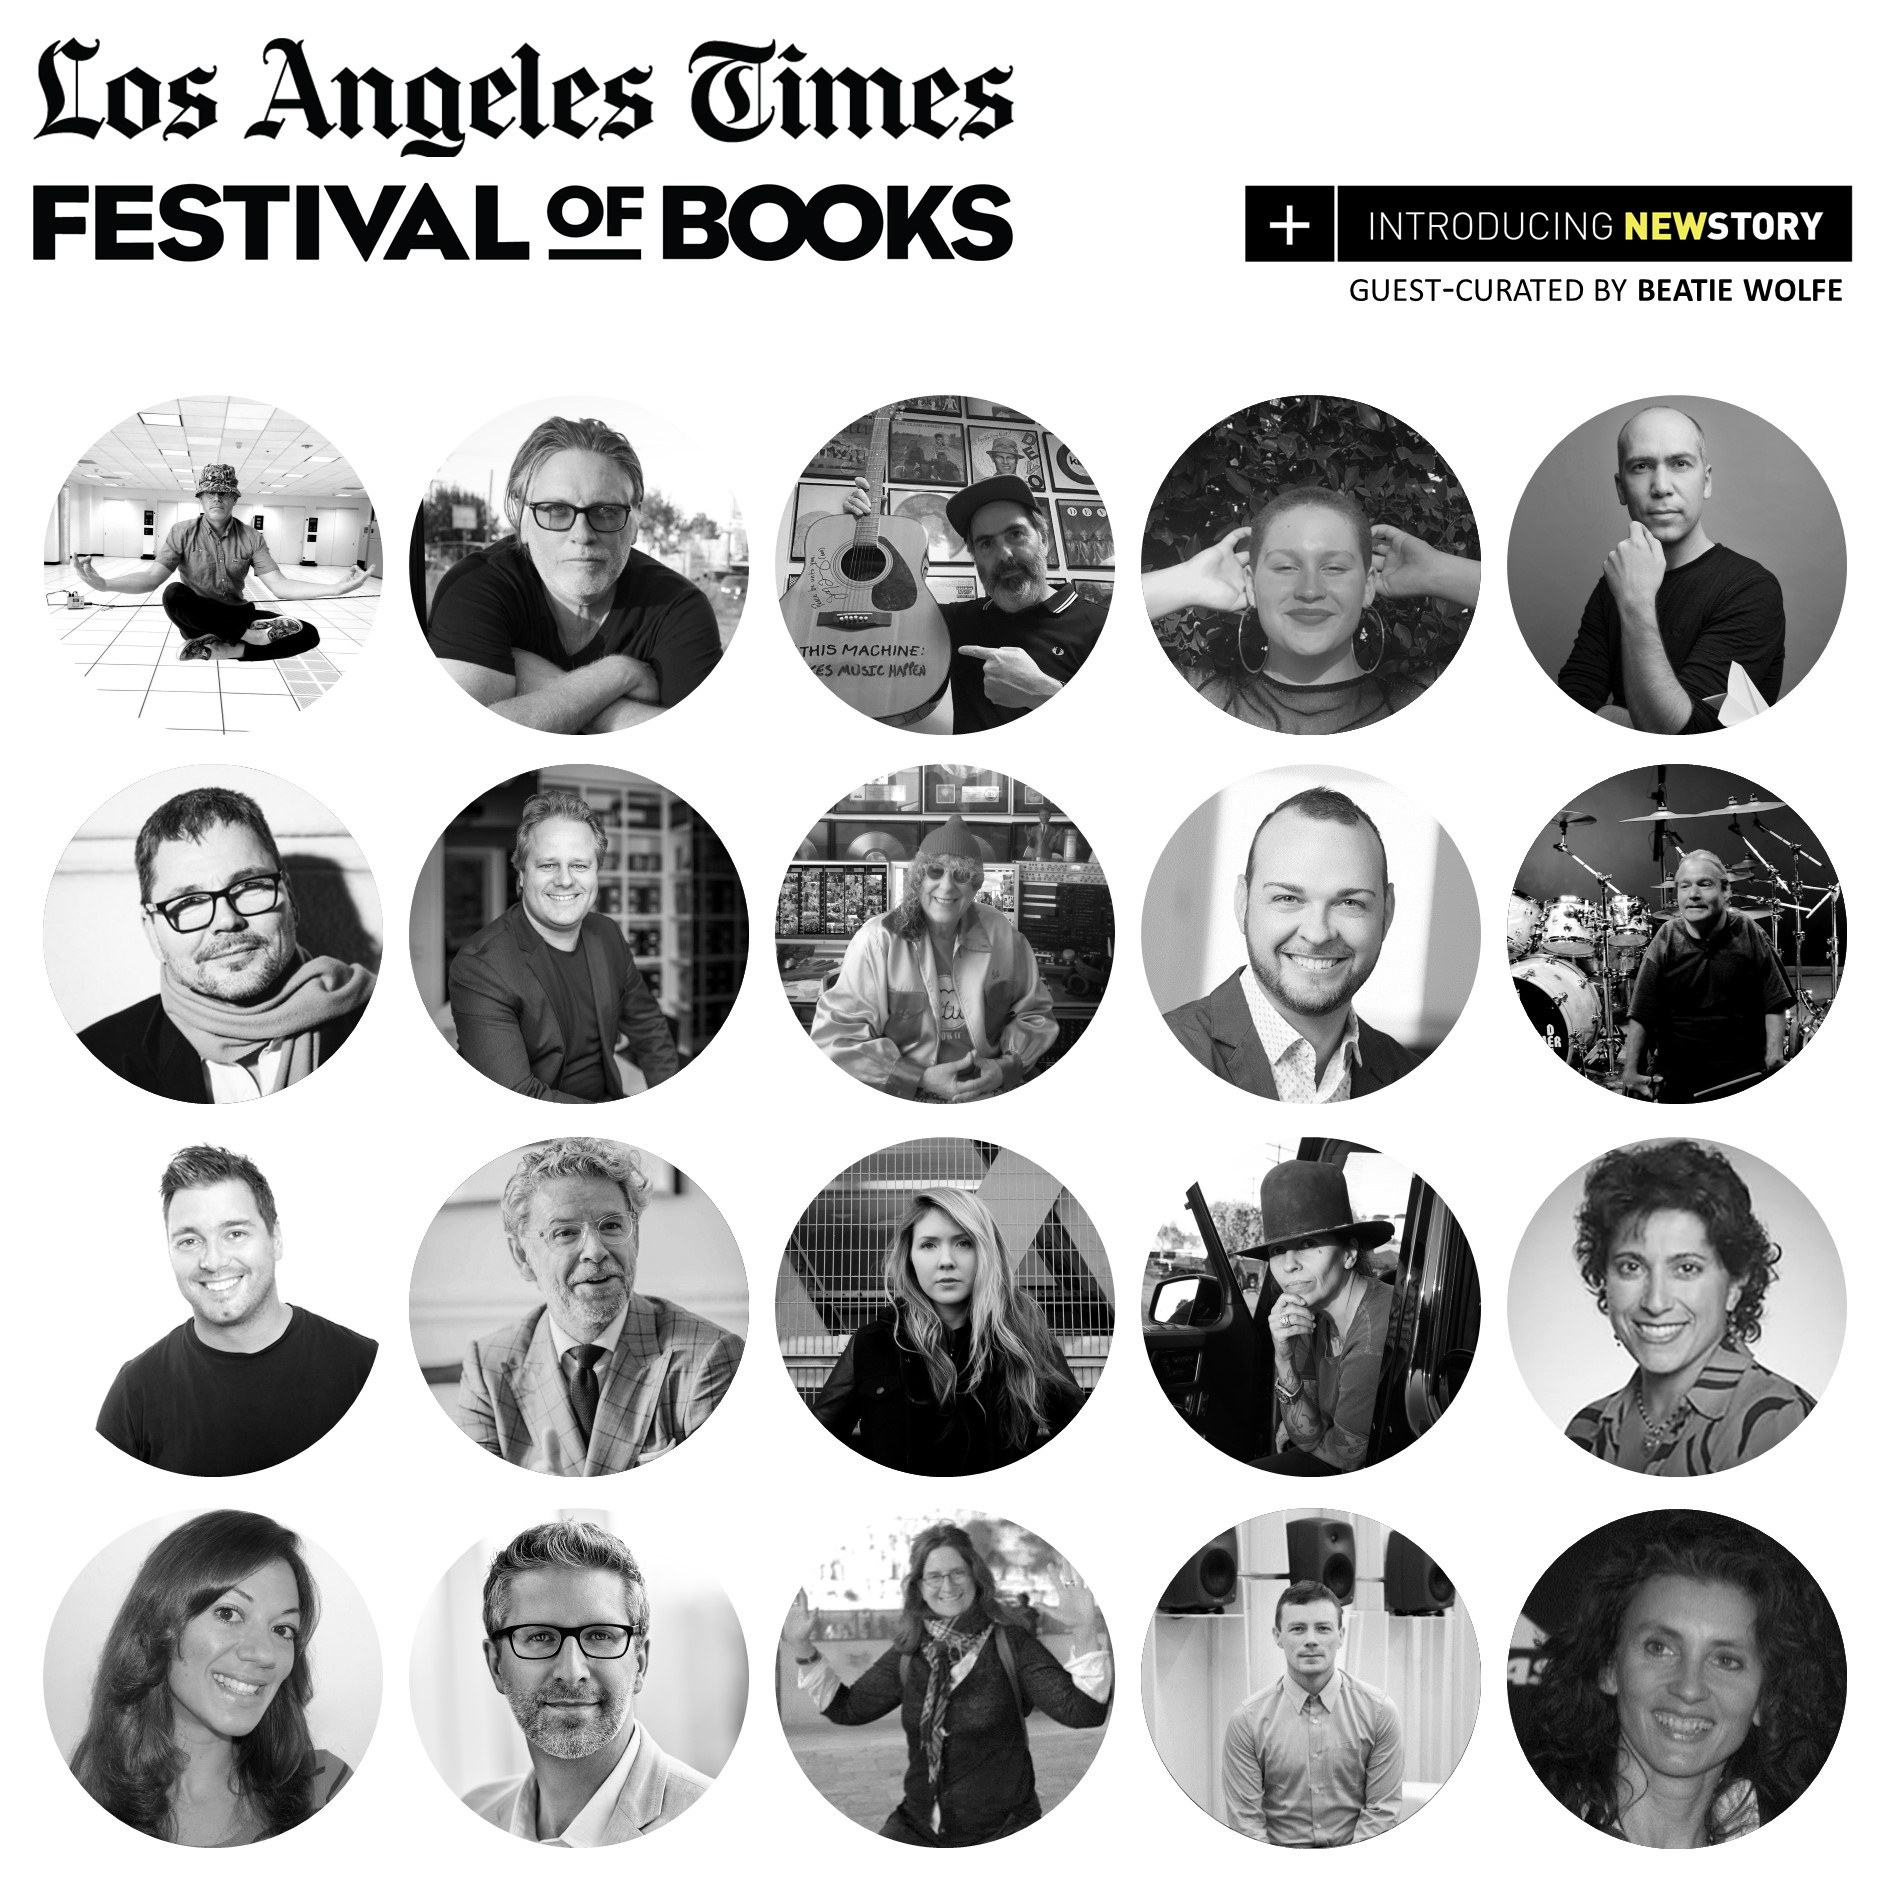 LA Times NewStory curated by Beatie Wolfe